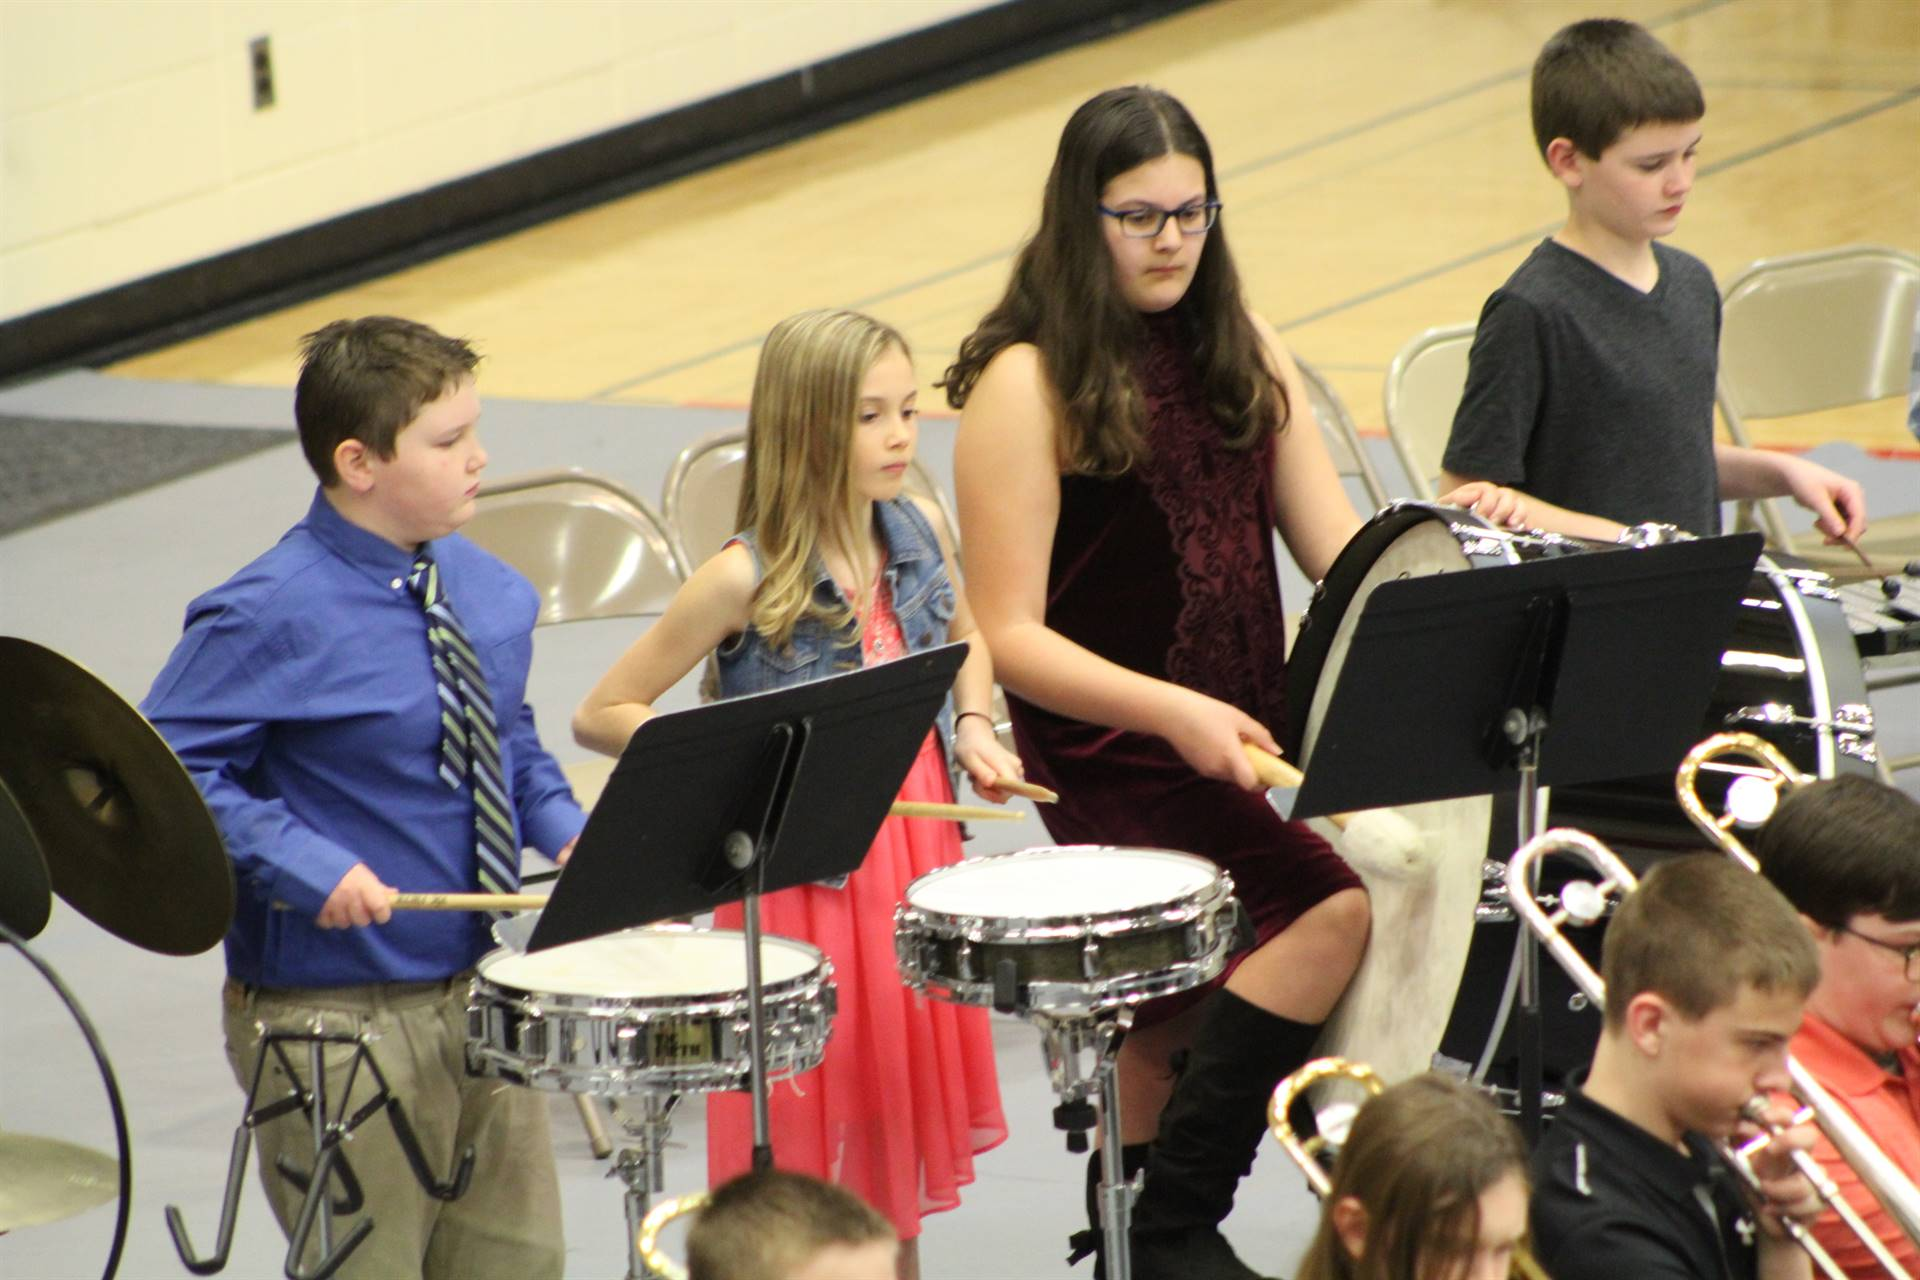 Four percussionists performing at a band concert